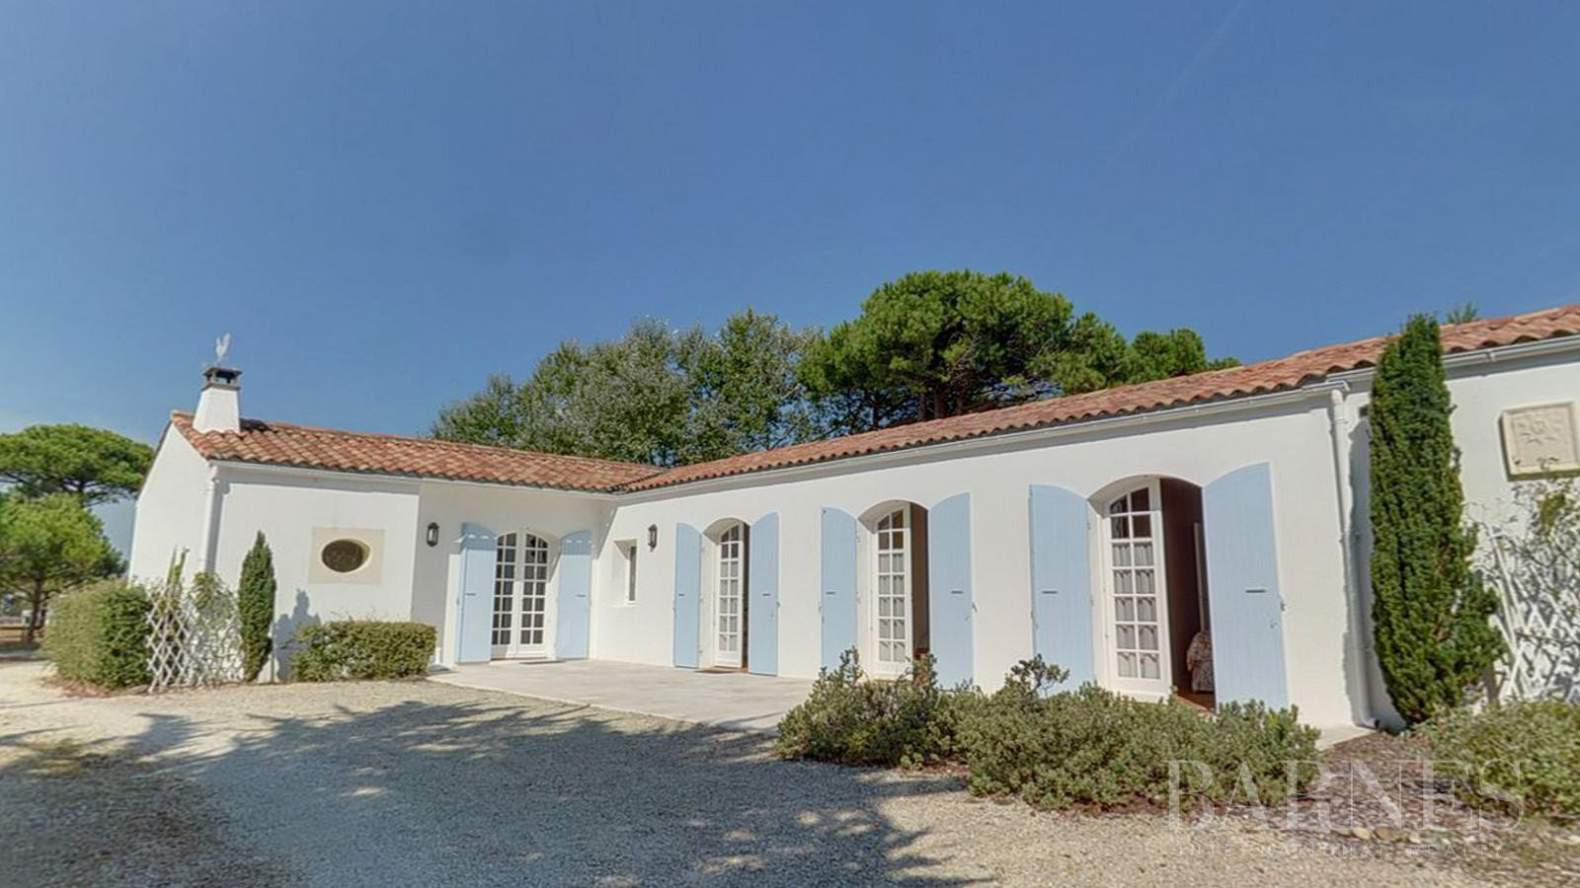 Ile de Ré - Les Portes - Close to La Patache - Swimming pool - 6 bedrooms picture 1